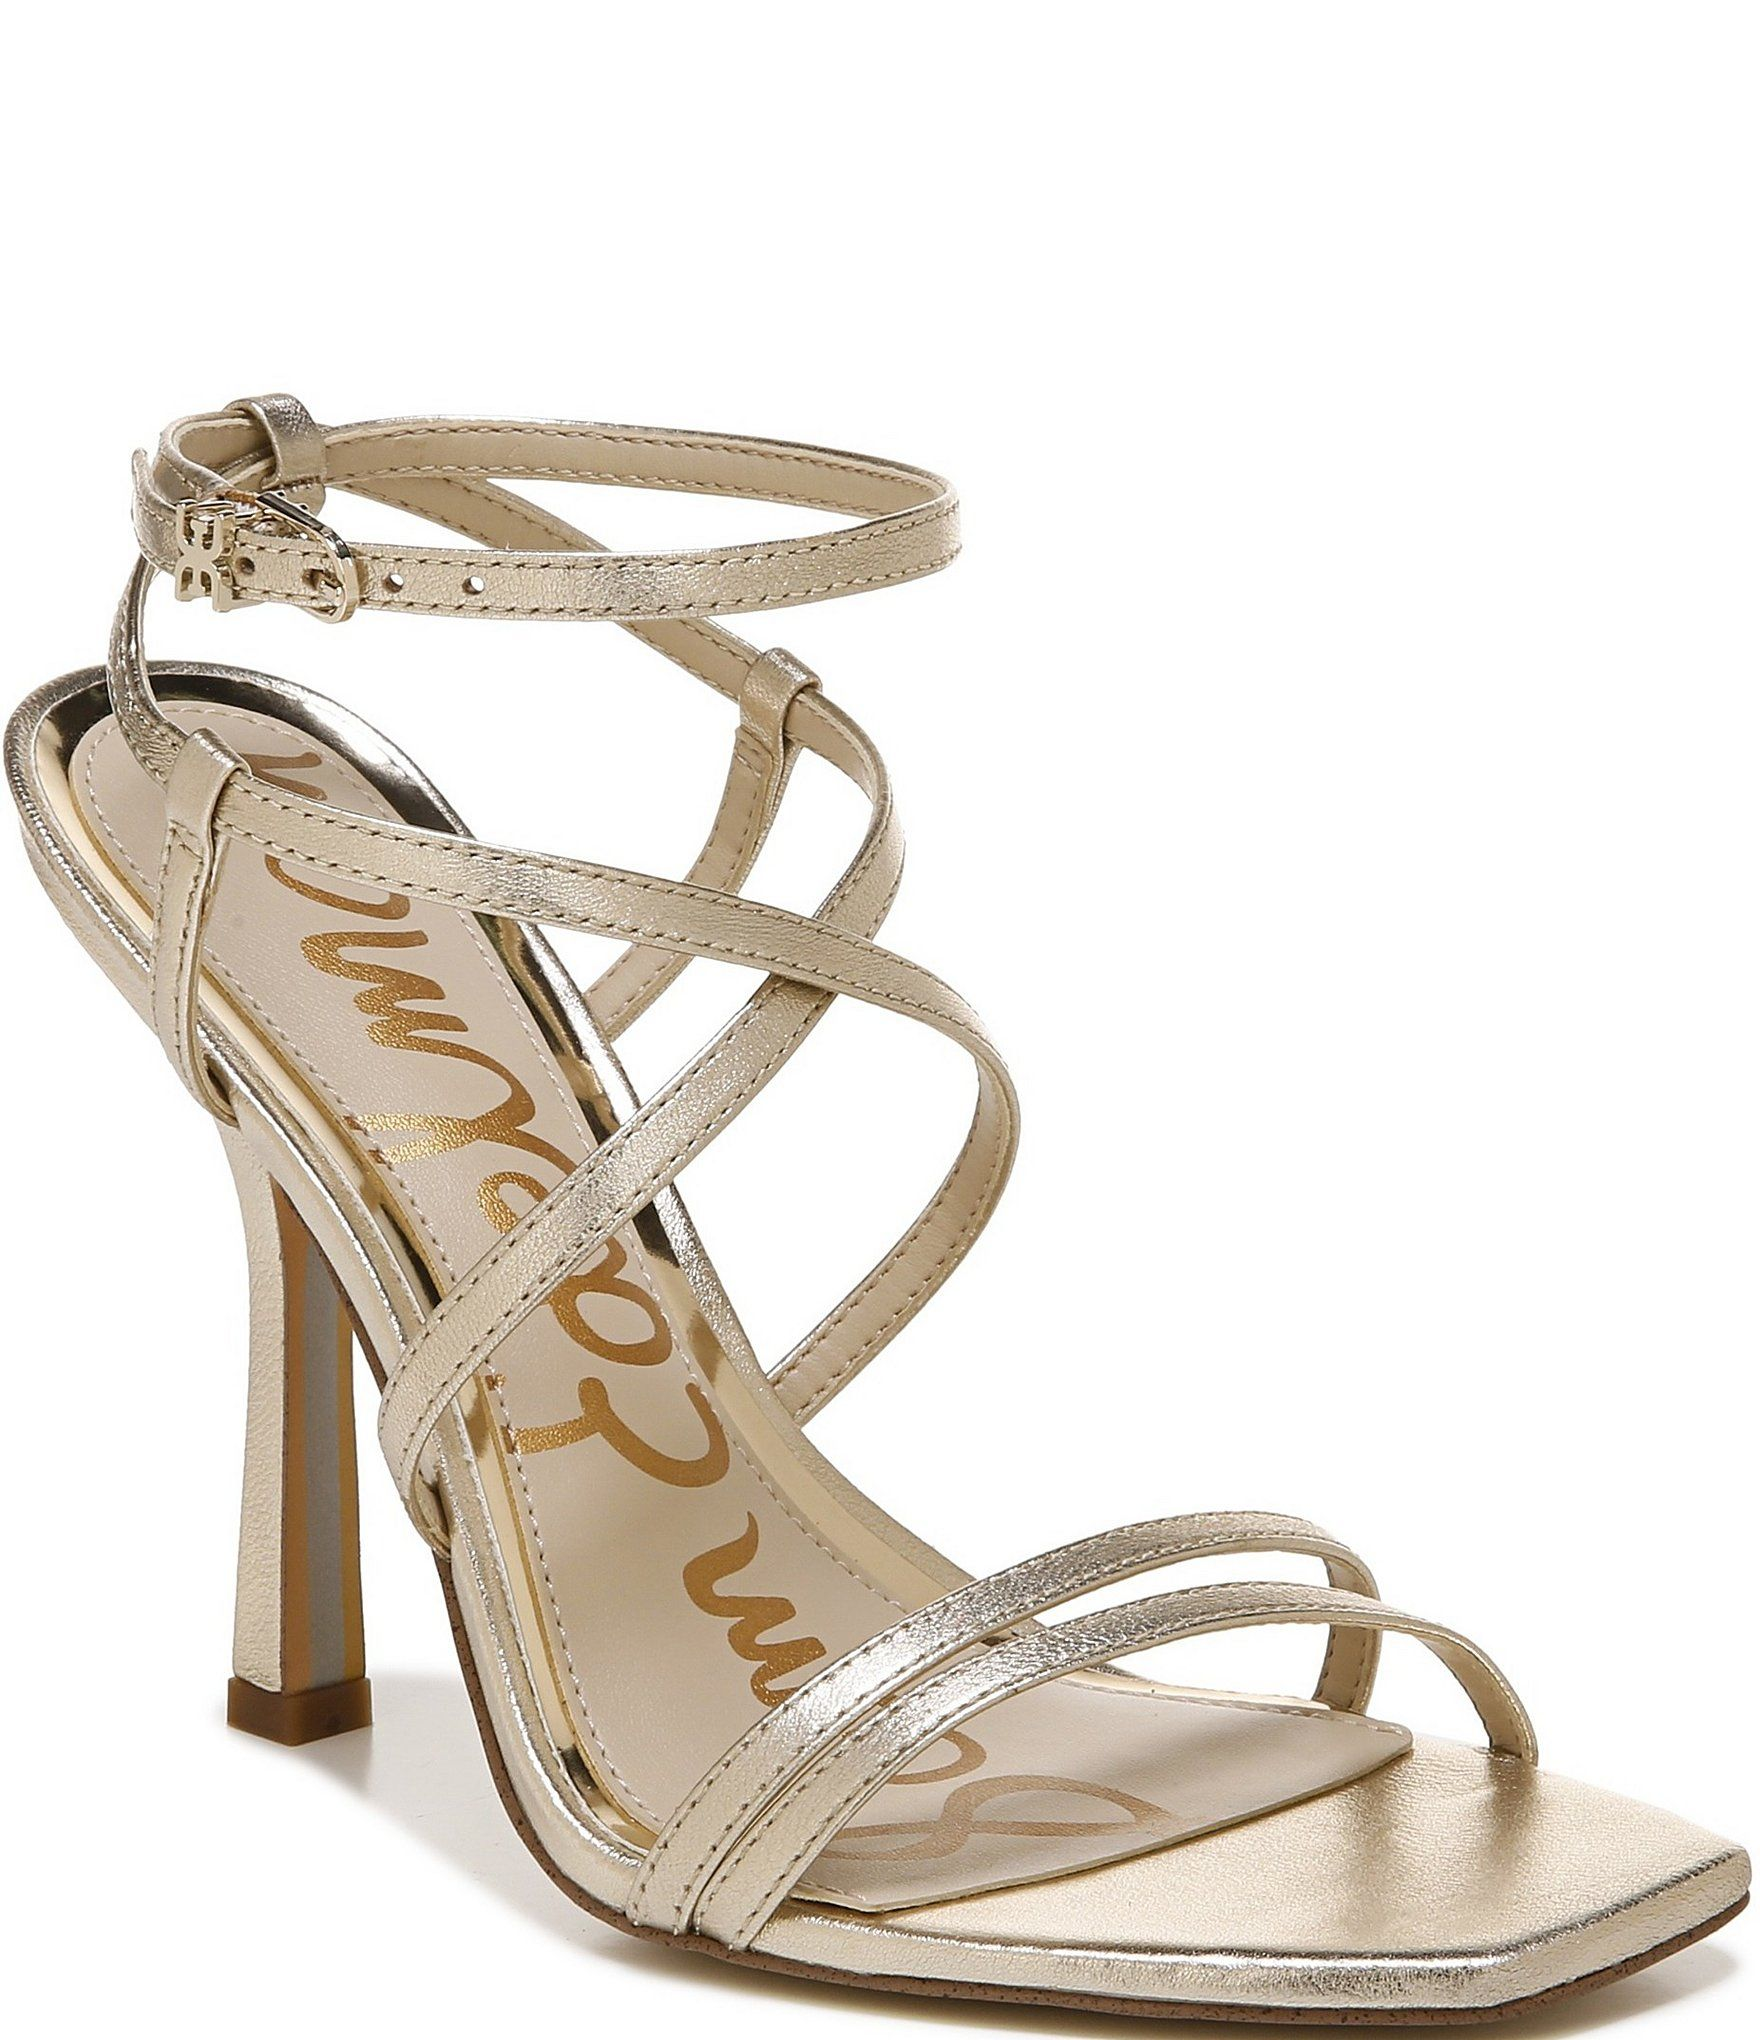 Sam Edelman Leeanne Metallic Leather Strappy Square Toe Dress Sandals | Dillard's #metallicleather